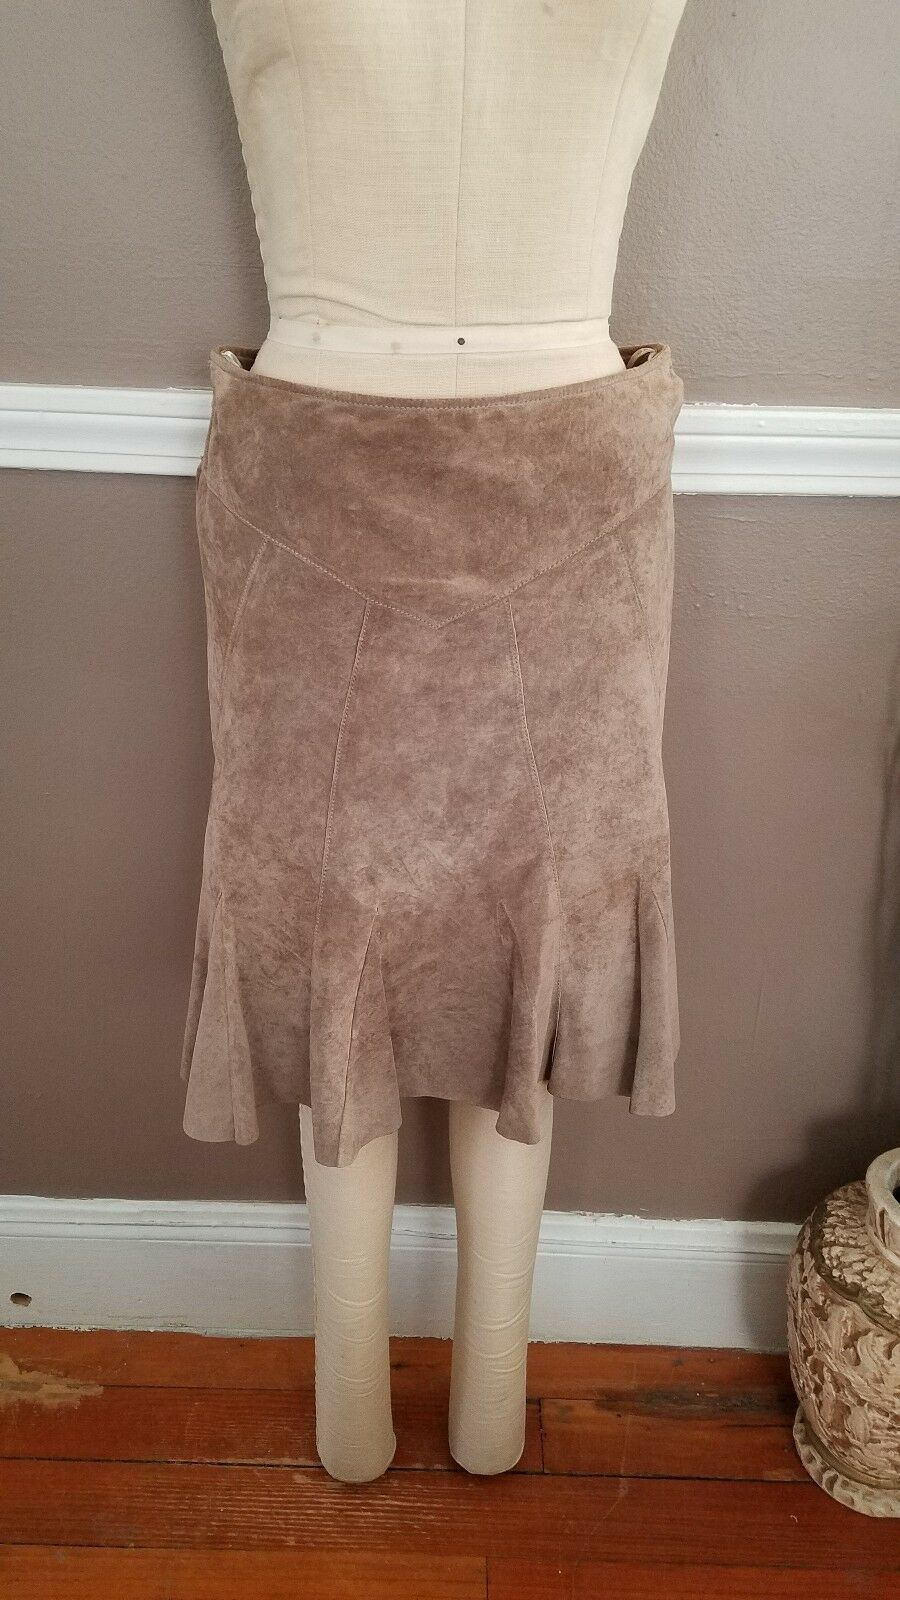 Stunning Tan color 100% Genuine Leather Anthropologie Skirt by June   Size 6